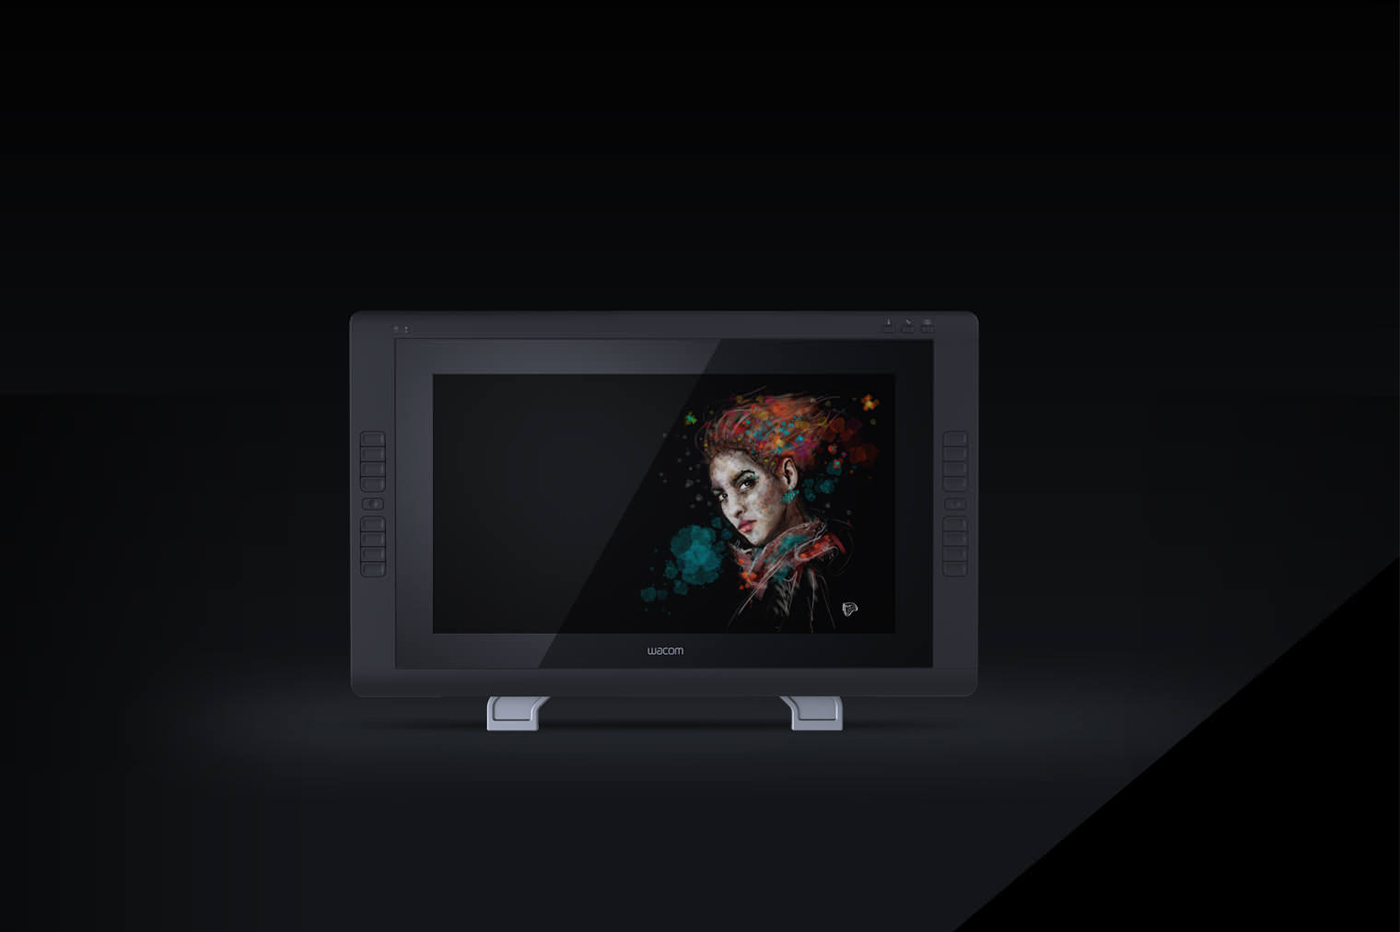 cintiq22hd-touch